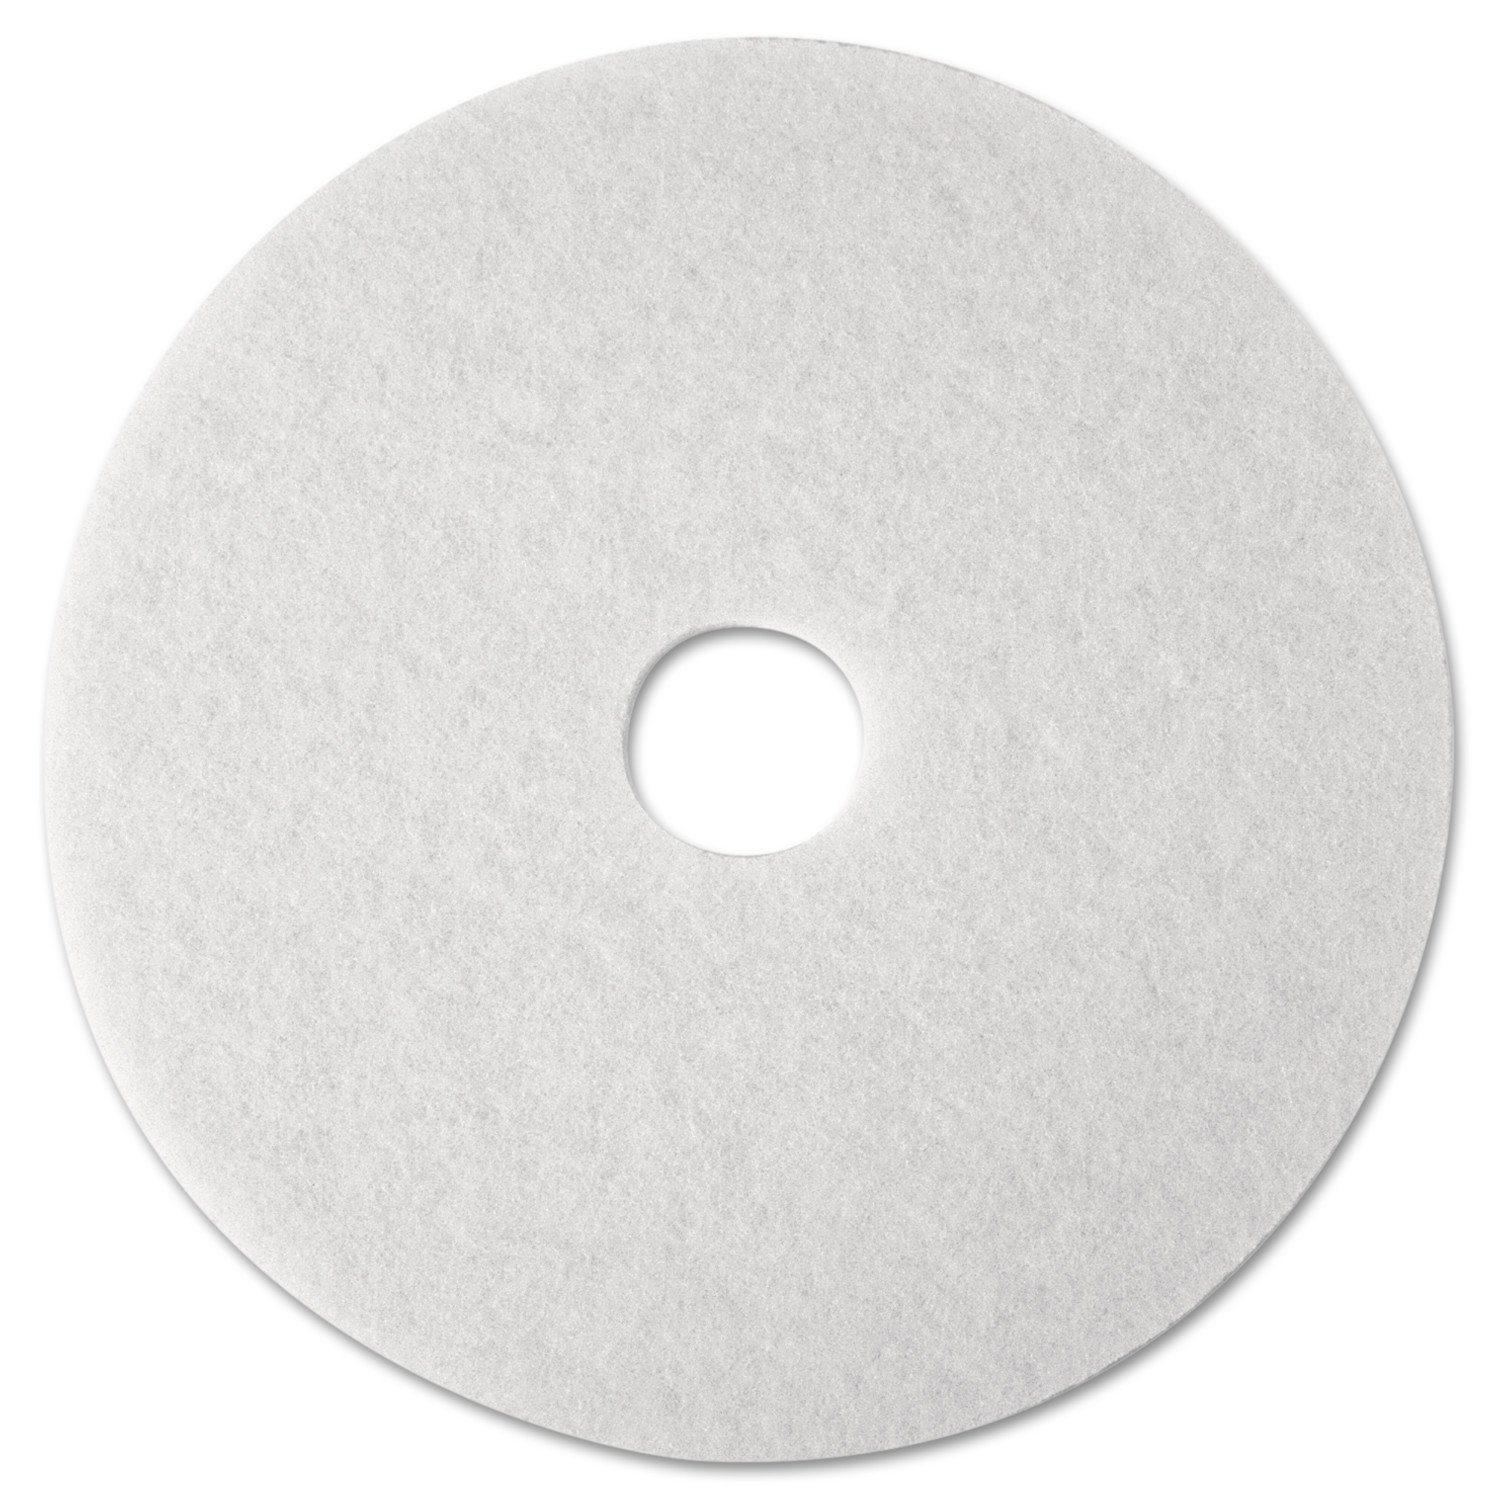 3M 4100 Series White Super Polish Pad 11 Case Of 5 Floor Cleaning Machine Pads Amazon Industrial Scientific